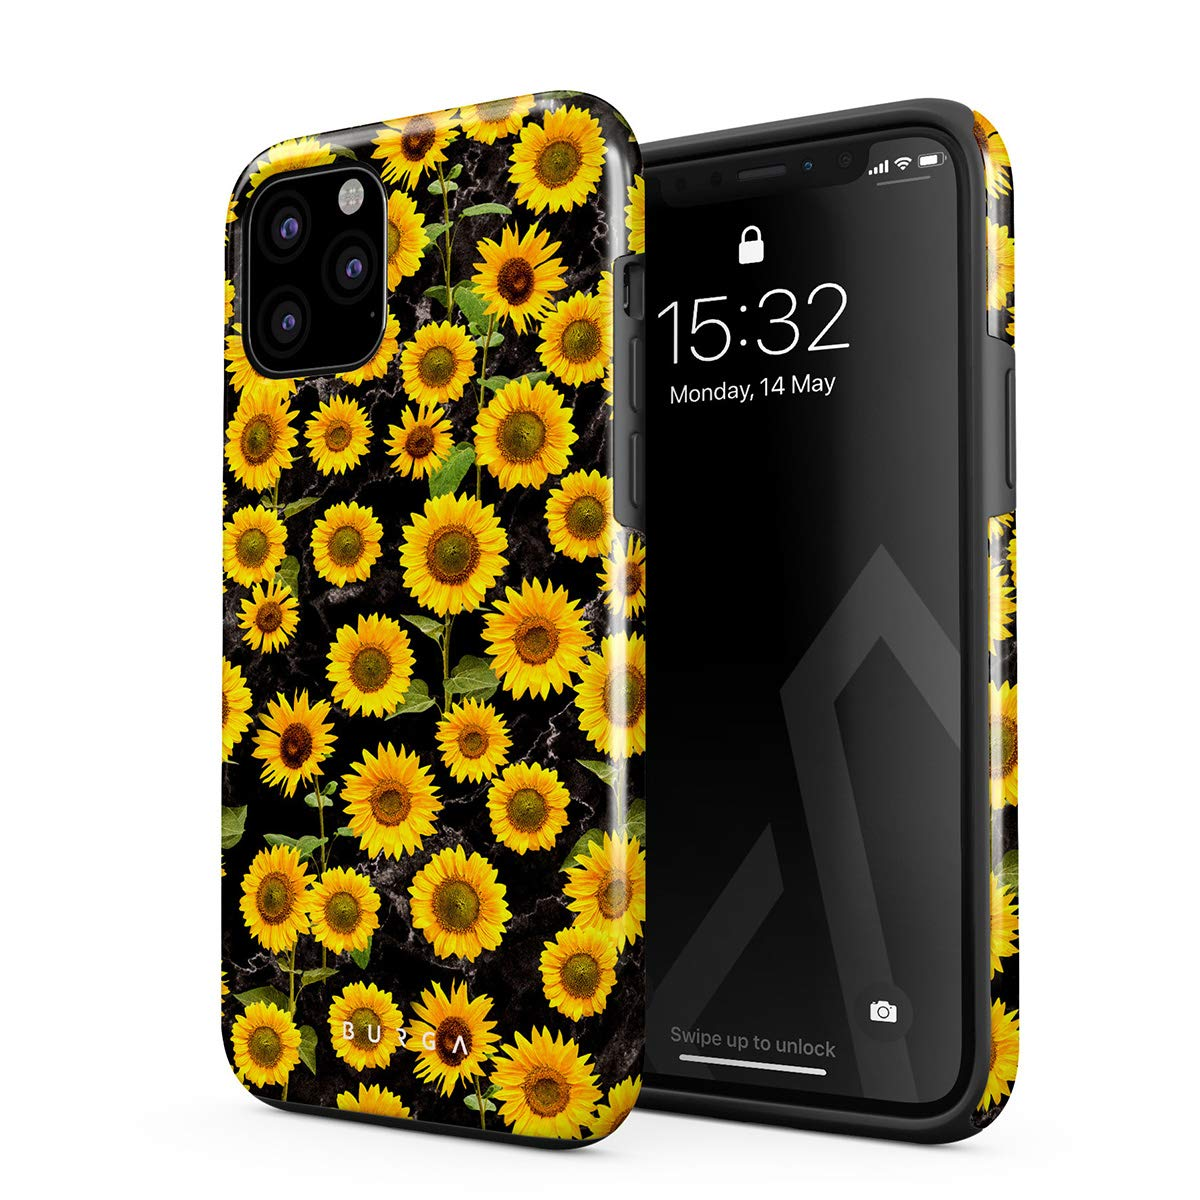 BURGA Phone Case Compatible with iPhone 11 PRO - Yellow Sunflowers Vinatge Flowers Floral Print Pattern Fashion Cute for Women Heavy Duty Shockproof Dual Layer Hard Shell + Silicone Protective Cover